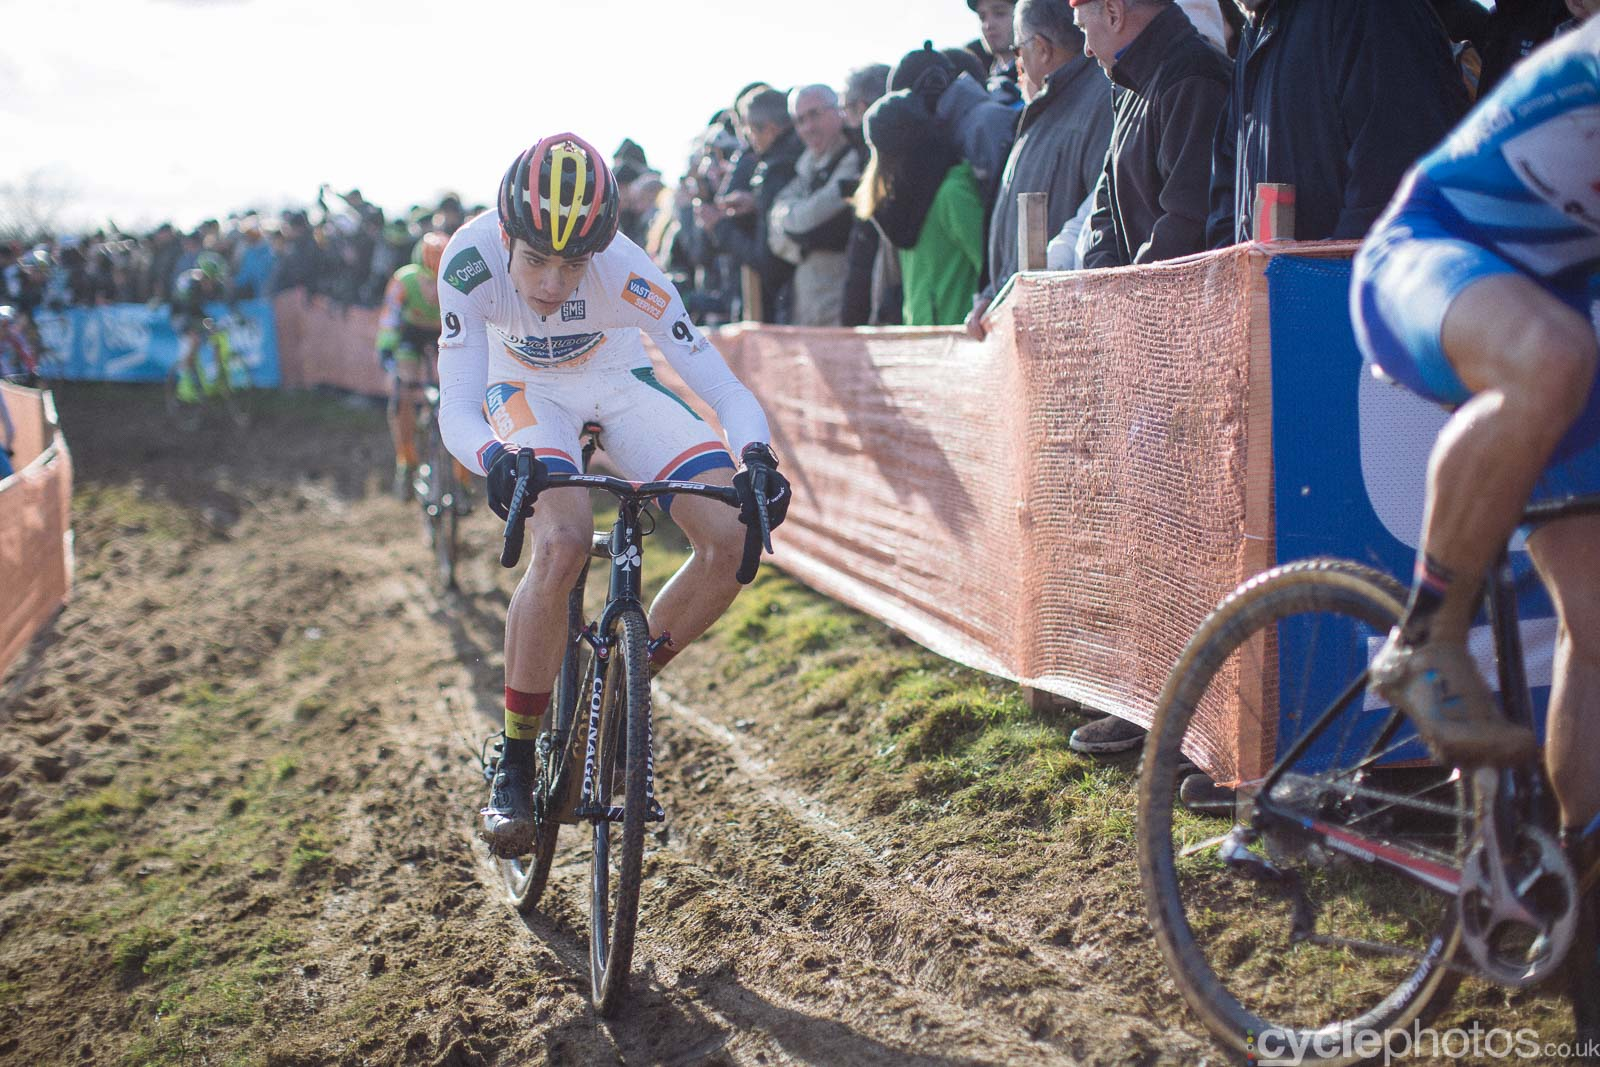 2016-cyclephotos-cyclocross-lignieres-150115-wout-van-aert